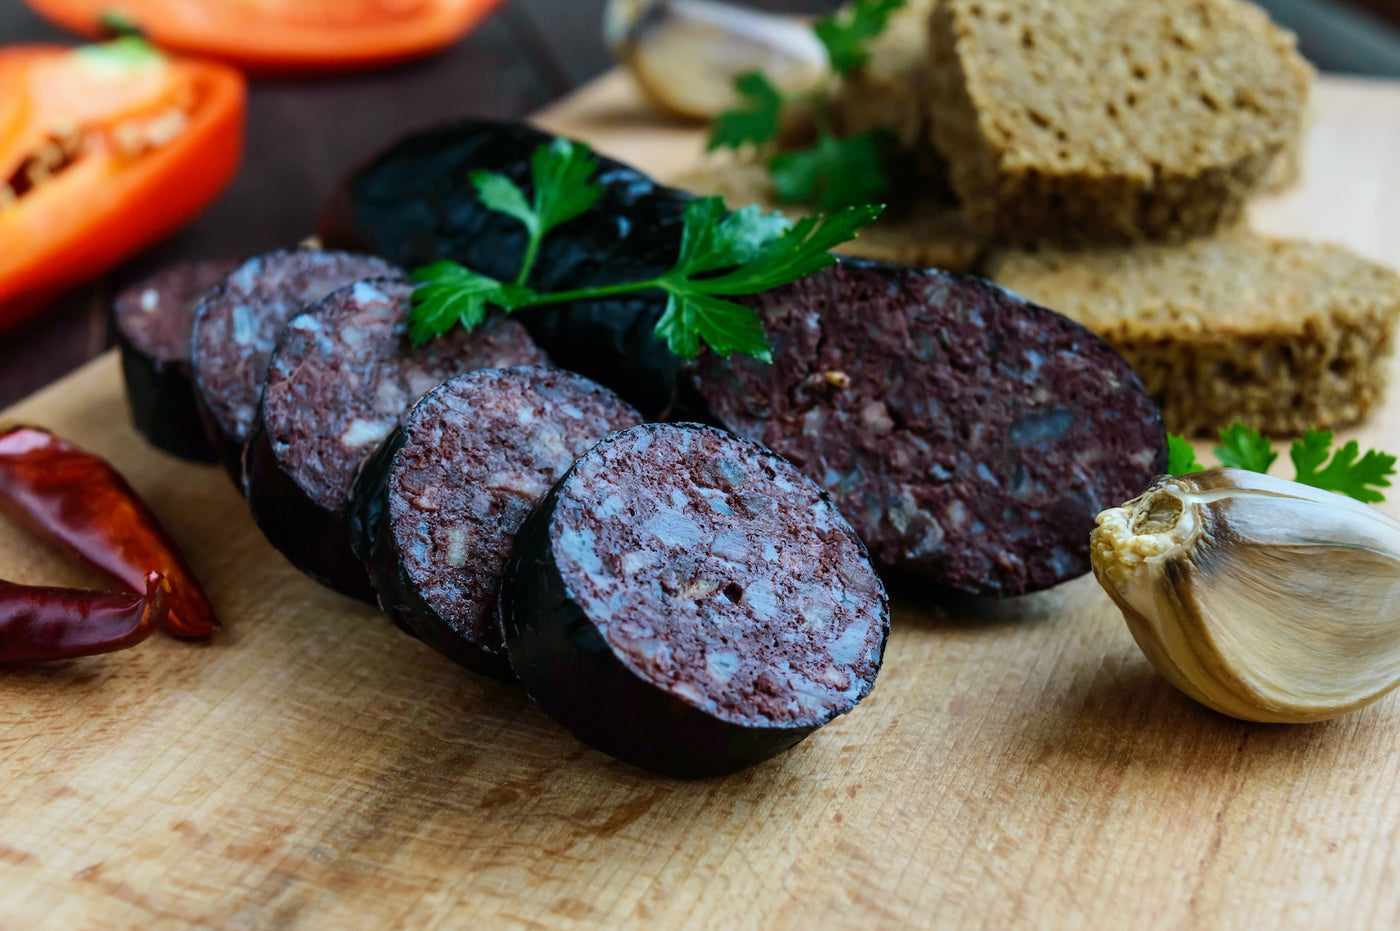 black pudding keto: Spanish black pudding slices with bread and vegetables on the side